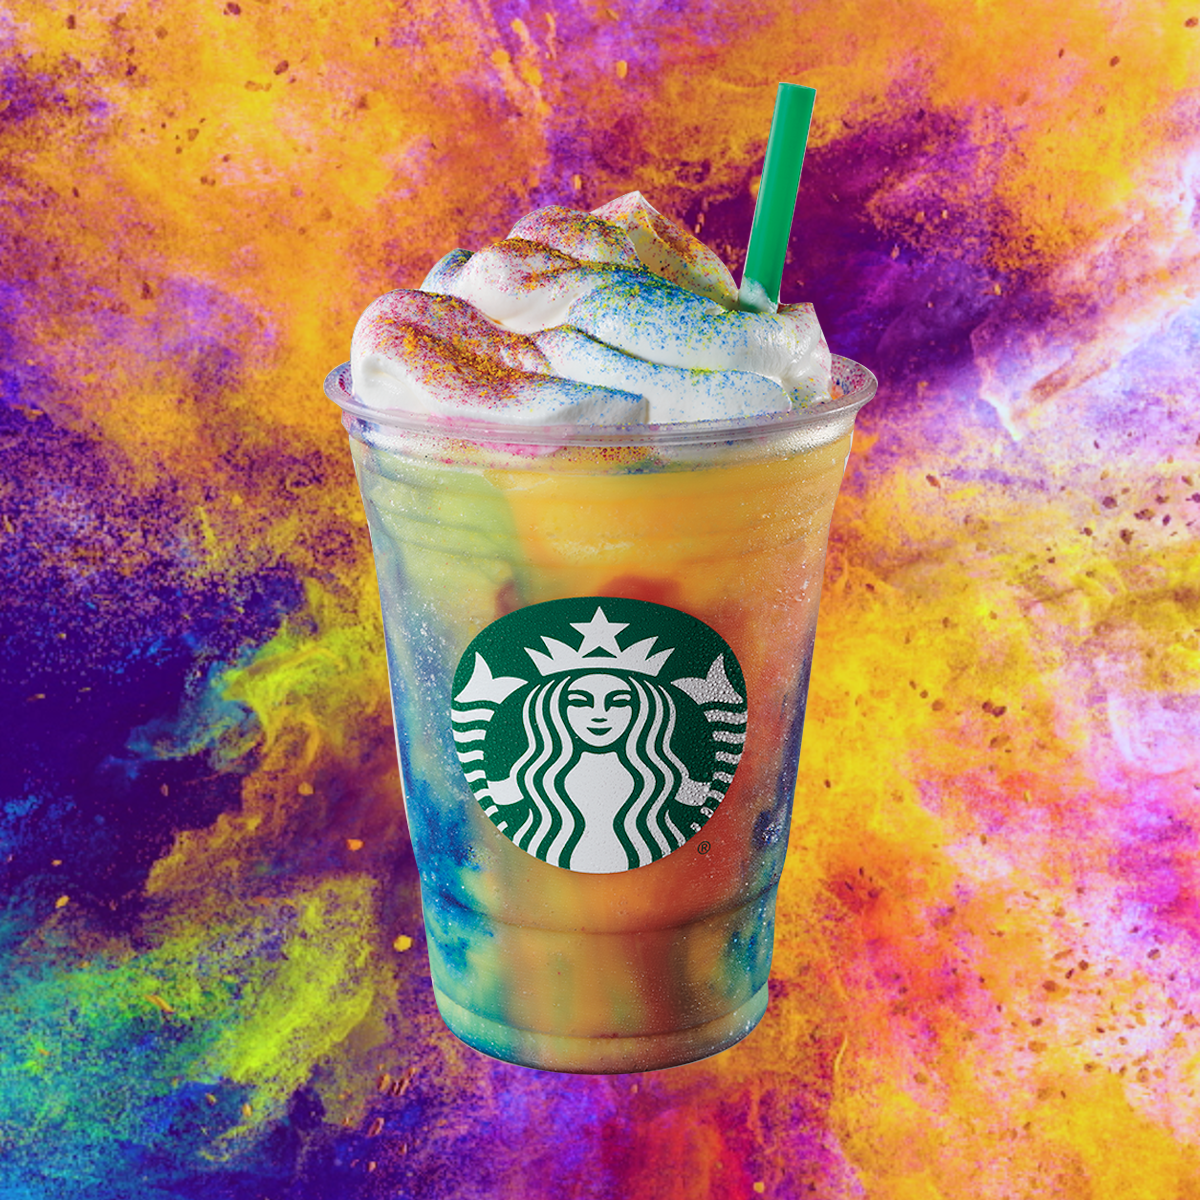 A Tie-Dye Frappuccino, Starbucks' latest novelty drink, quickly became a darling of social media.